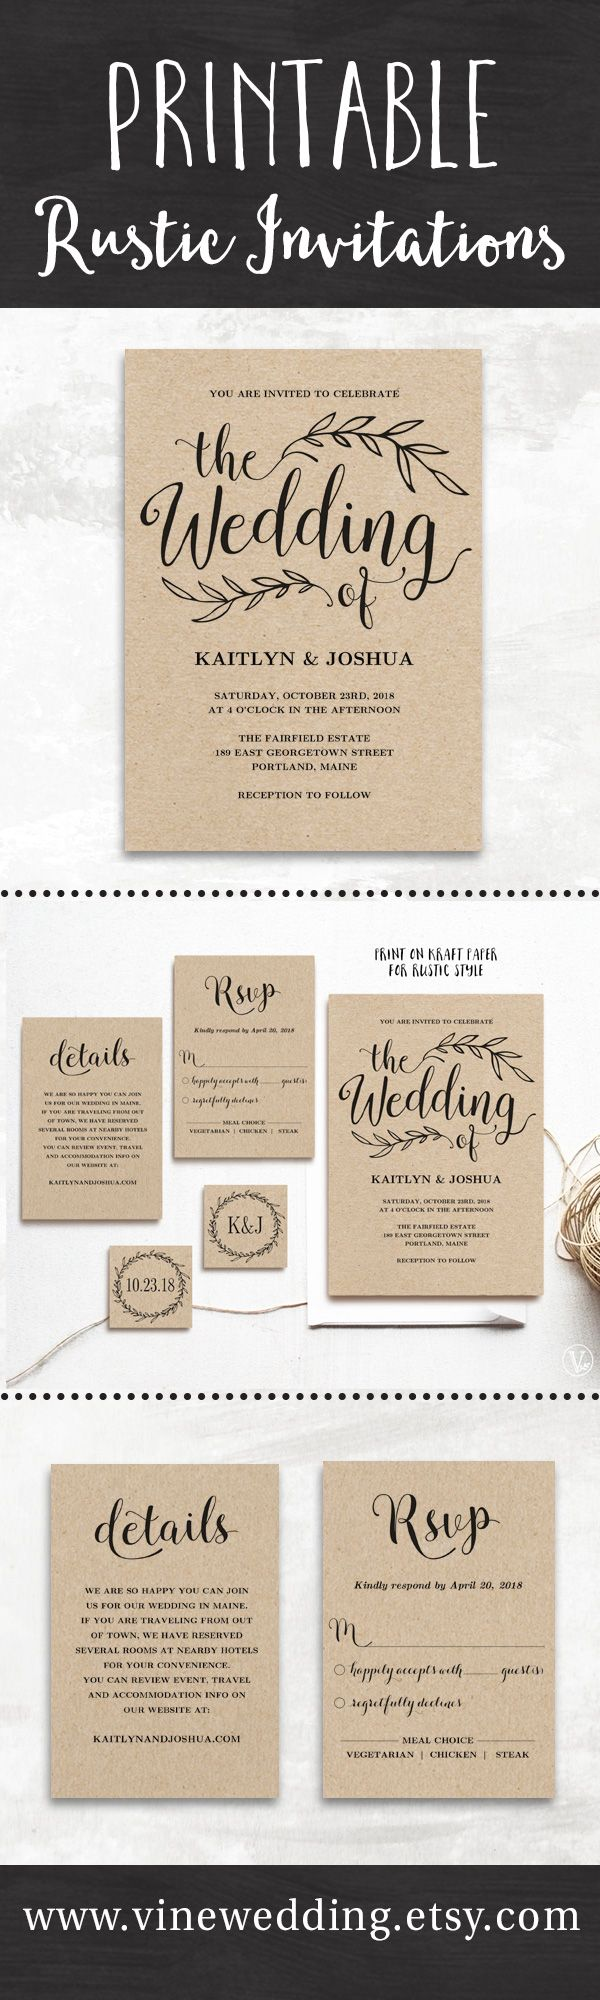 not on the high street winter wedding invitations%0A Beautiful rustic wedding invitations  Editable instant download templates  you can print as many as you